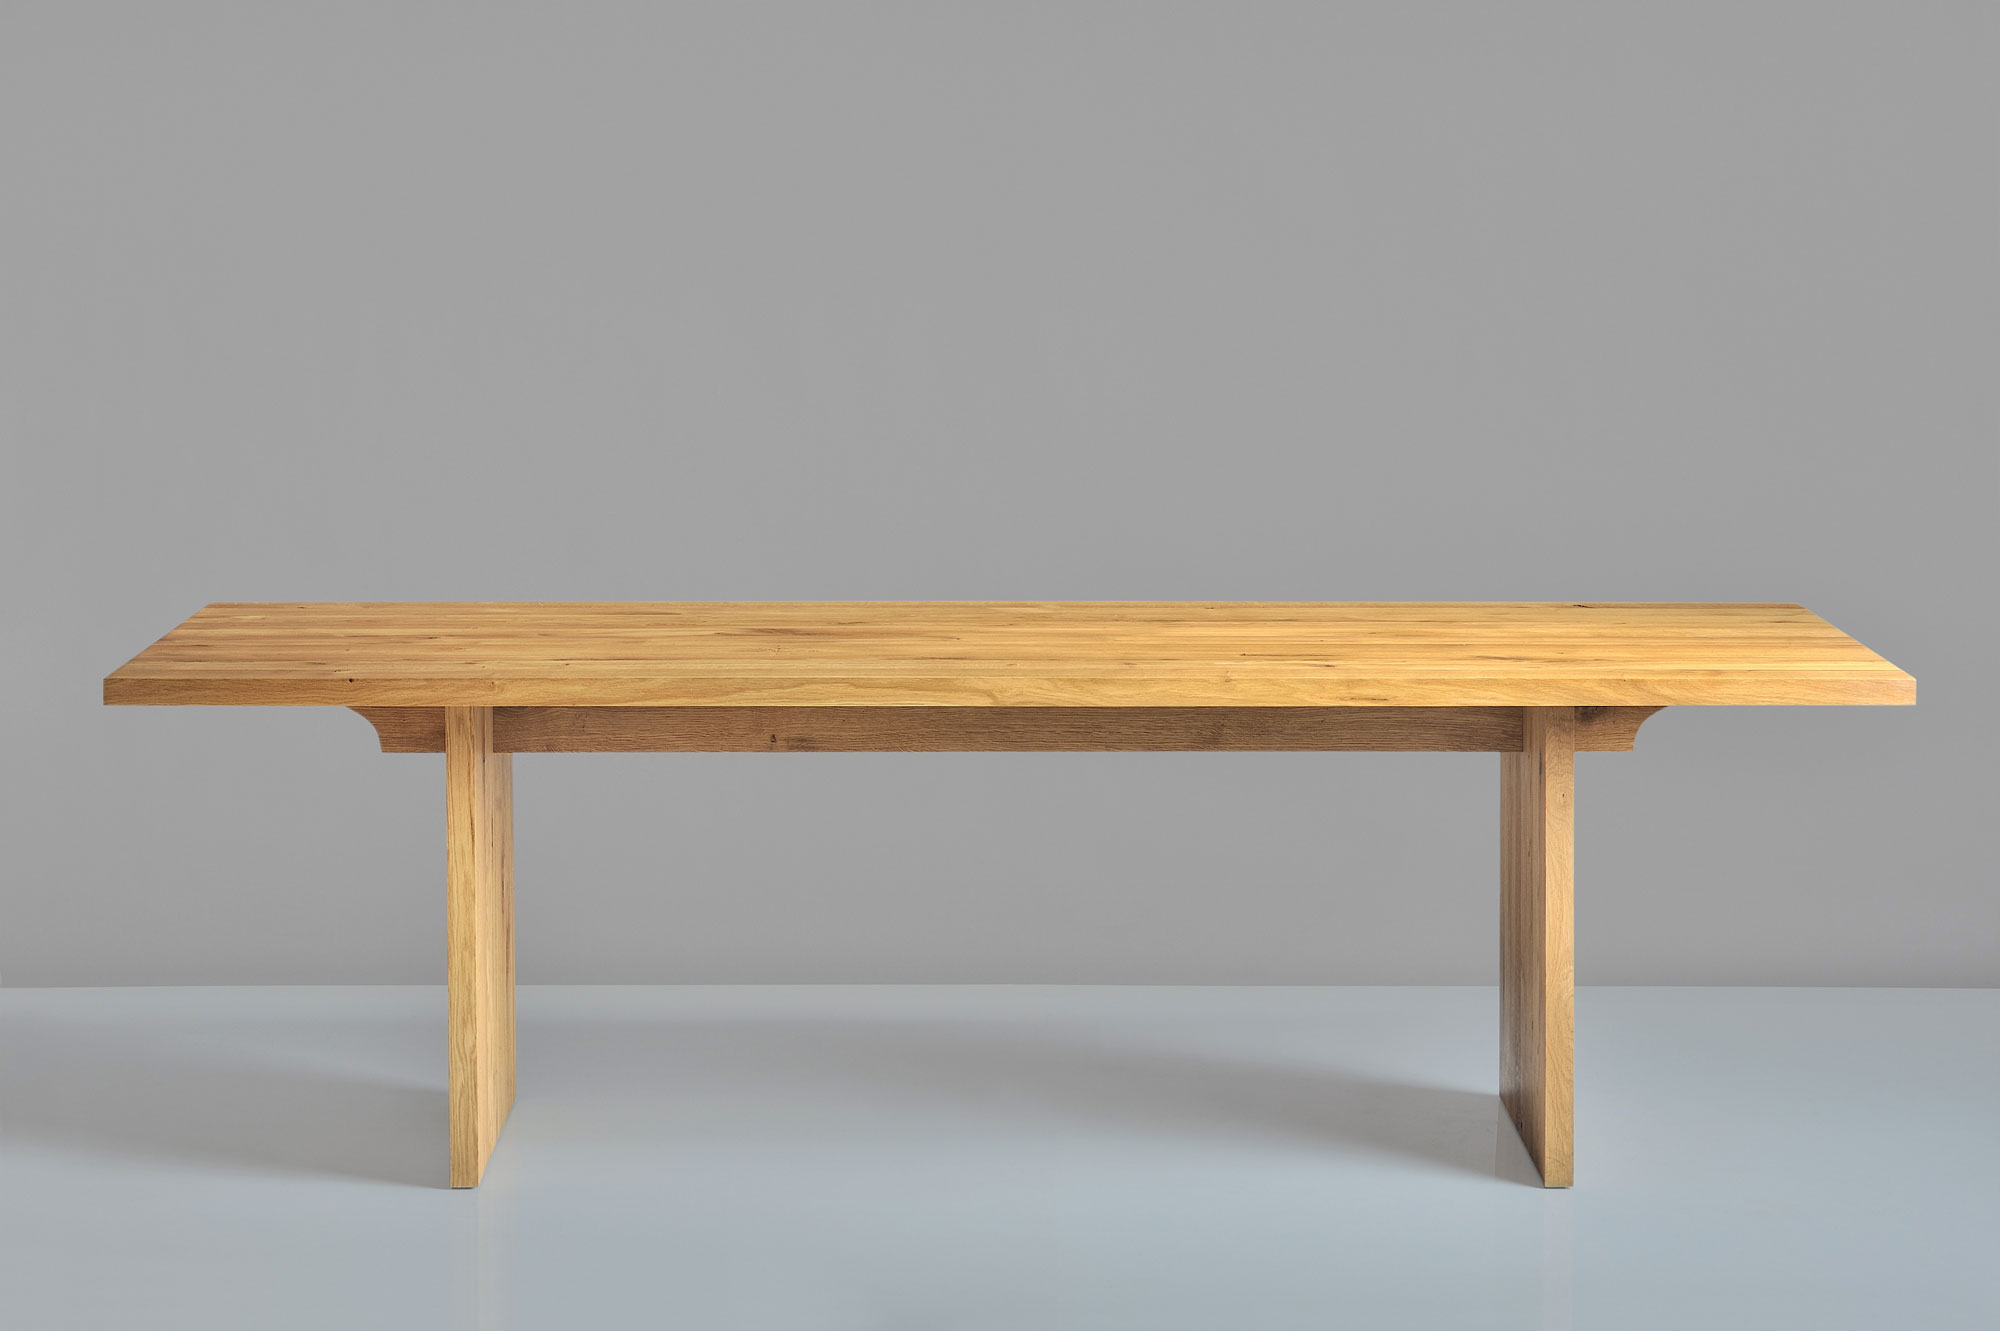 Gable Solid Wood Table SAGA 1408 custom made in solid wood by vitamin design